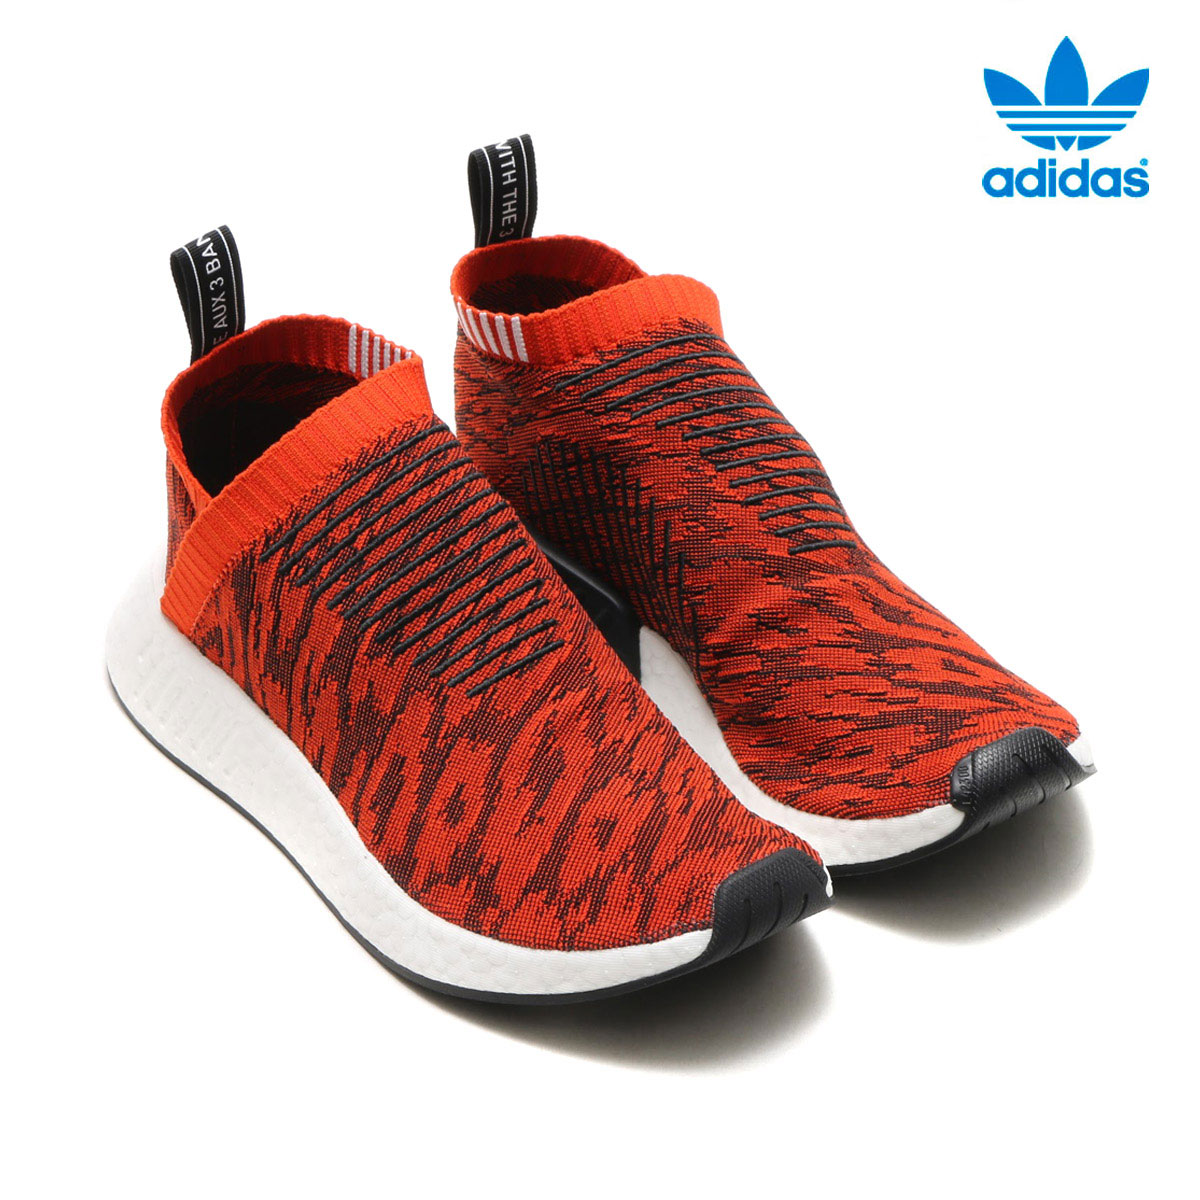 sports shoes 43e42 ddfa3 adidas Originals NMD CS2 PK (Adidas originals nomad) (FUTURE HARVEST/FUTURE  HARVEST) 17FW-I